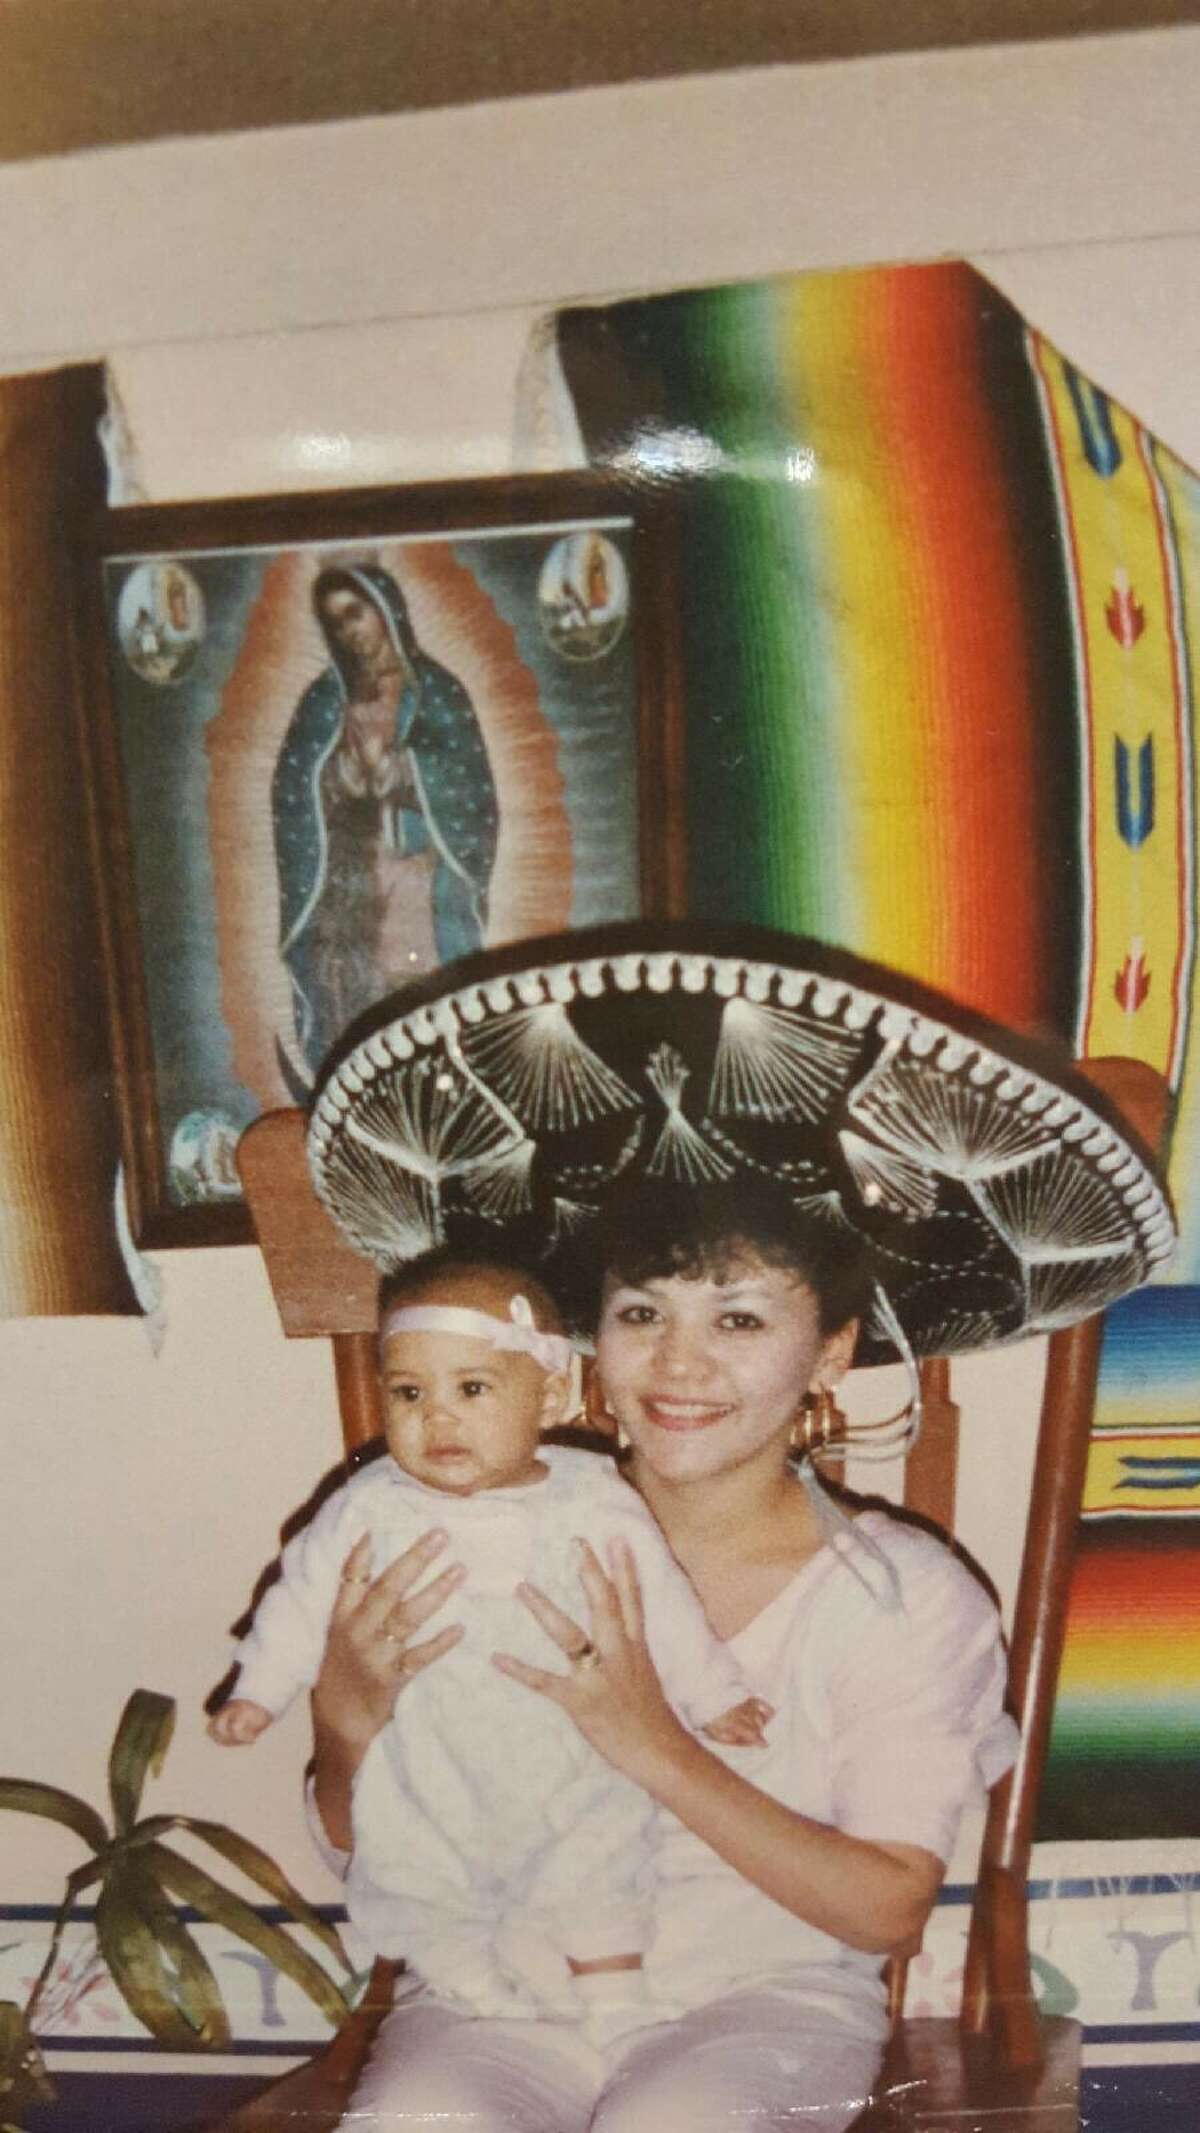 Reyes is pictured here with her grandmother in a restaurant in Monterrey, Mexico.